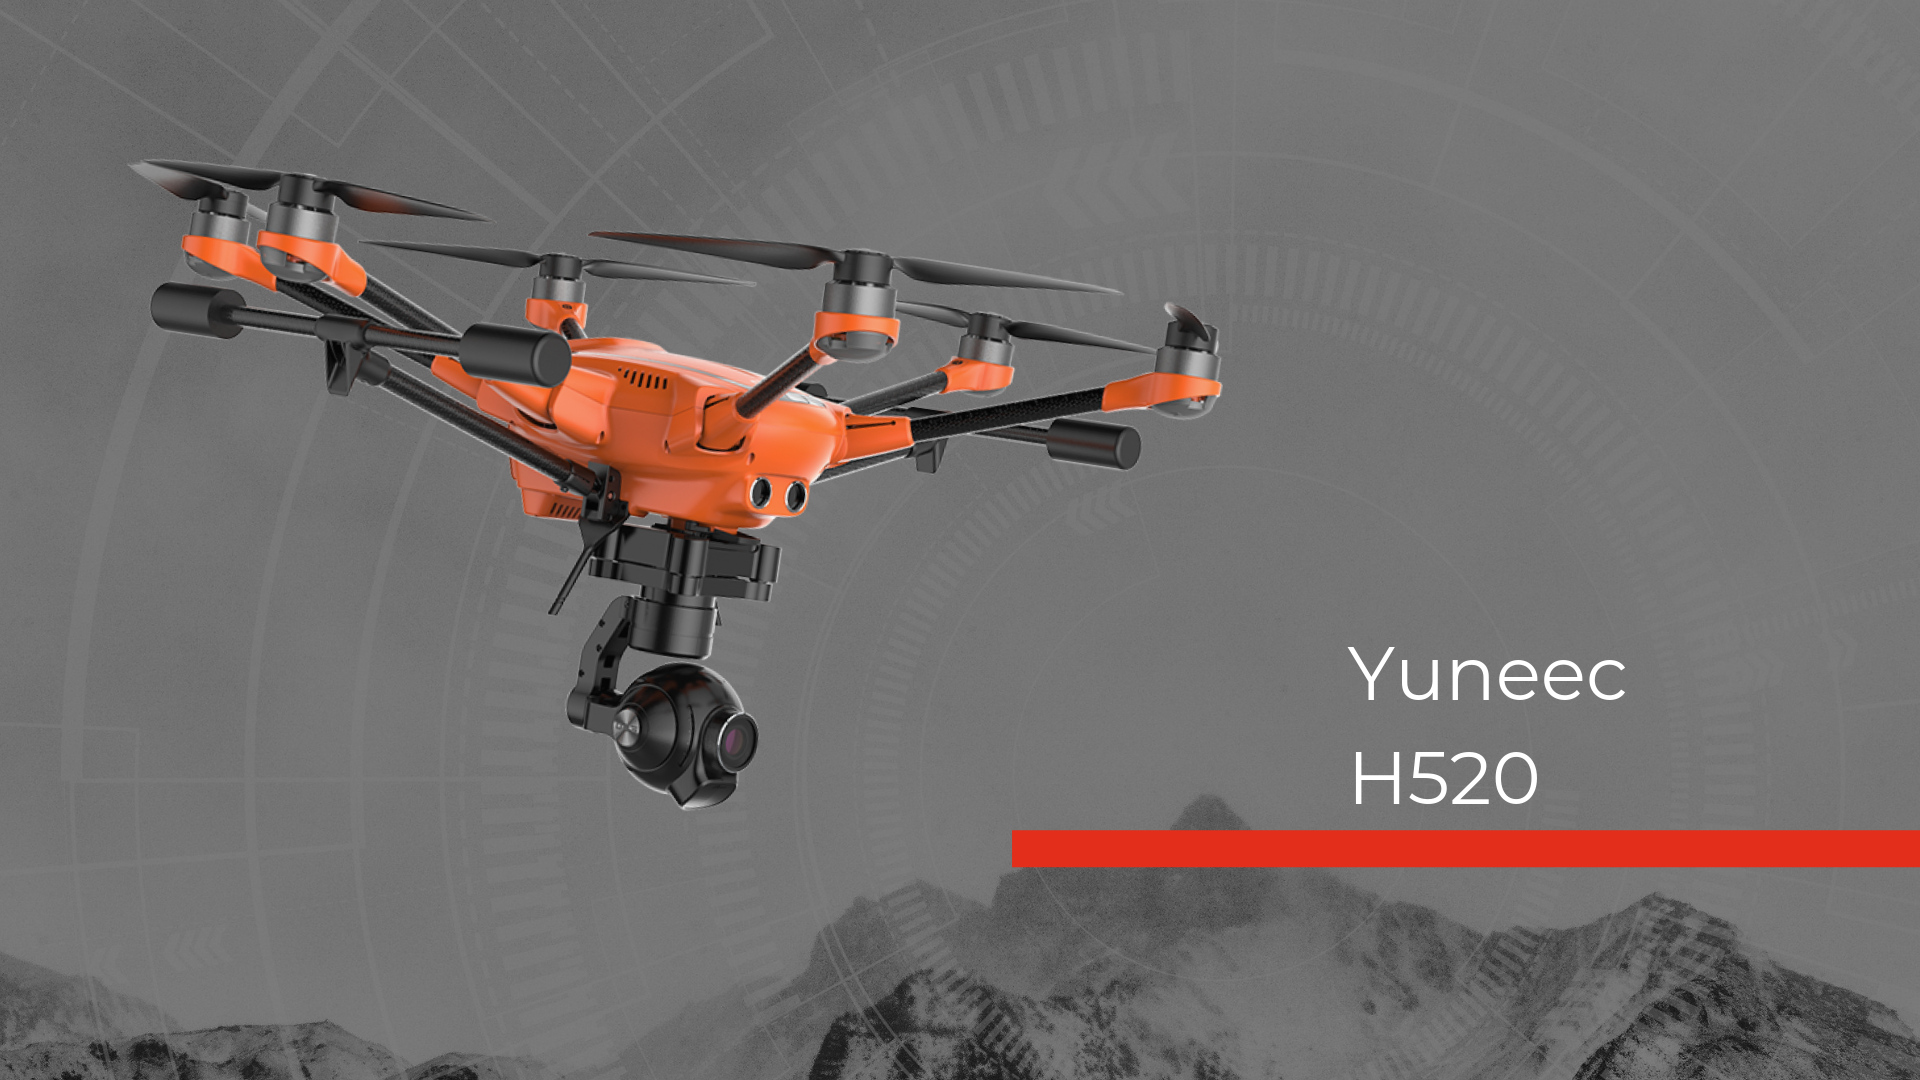 Yuneec H520 Hero Image Fire and police drone